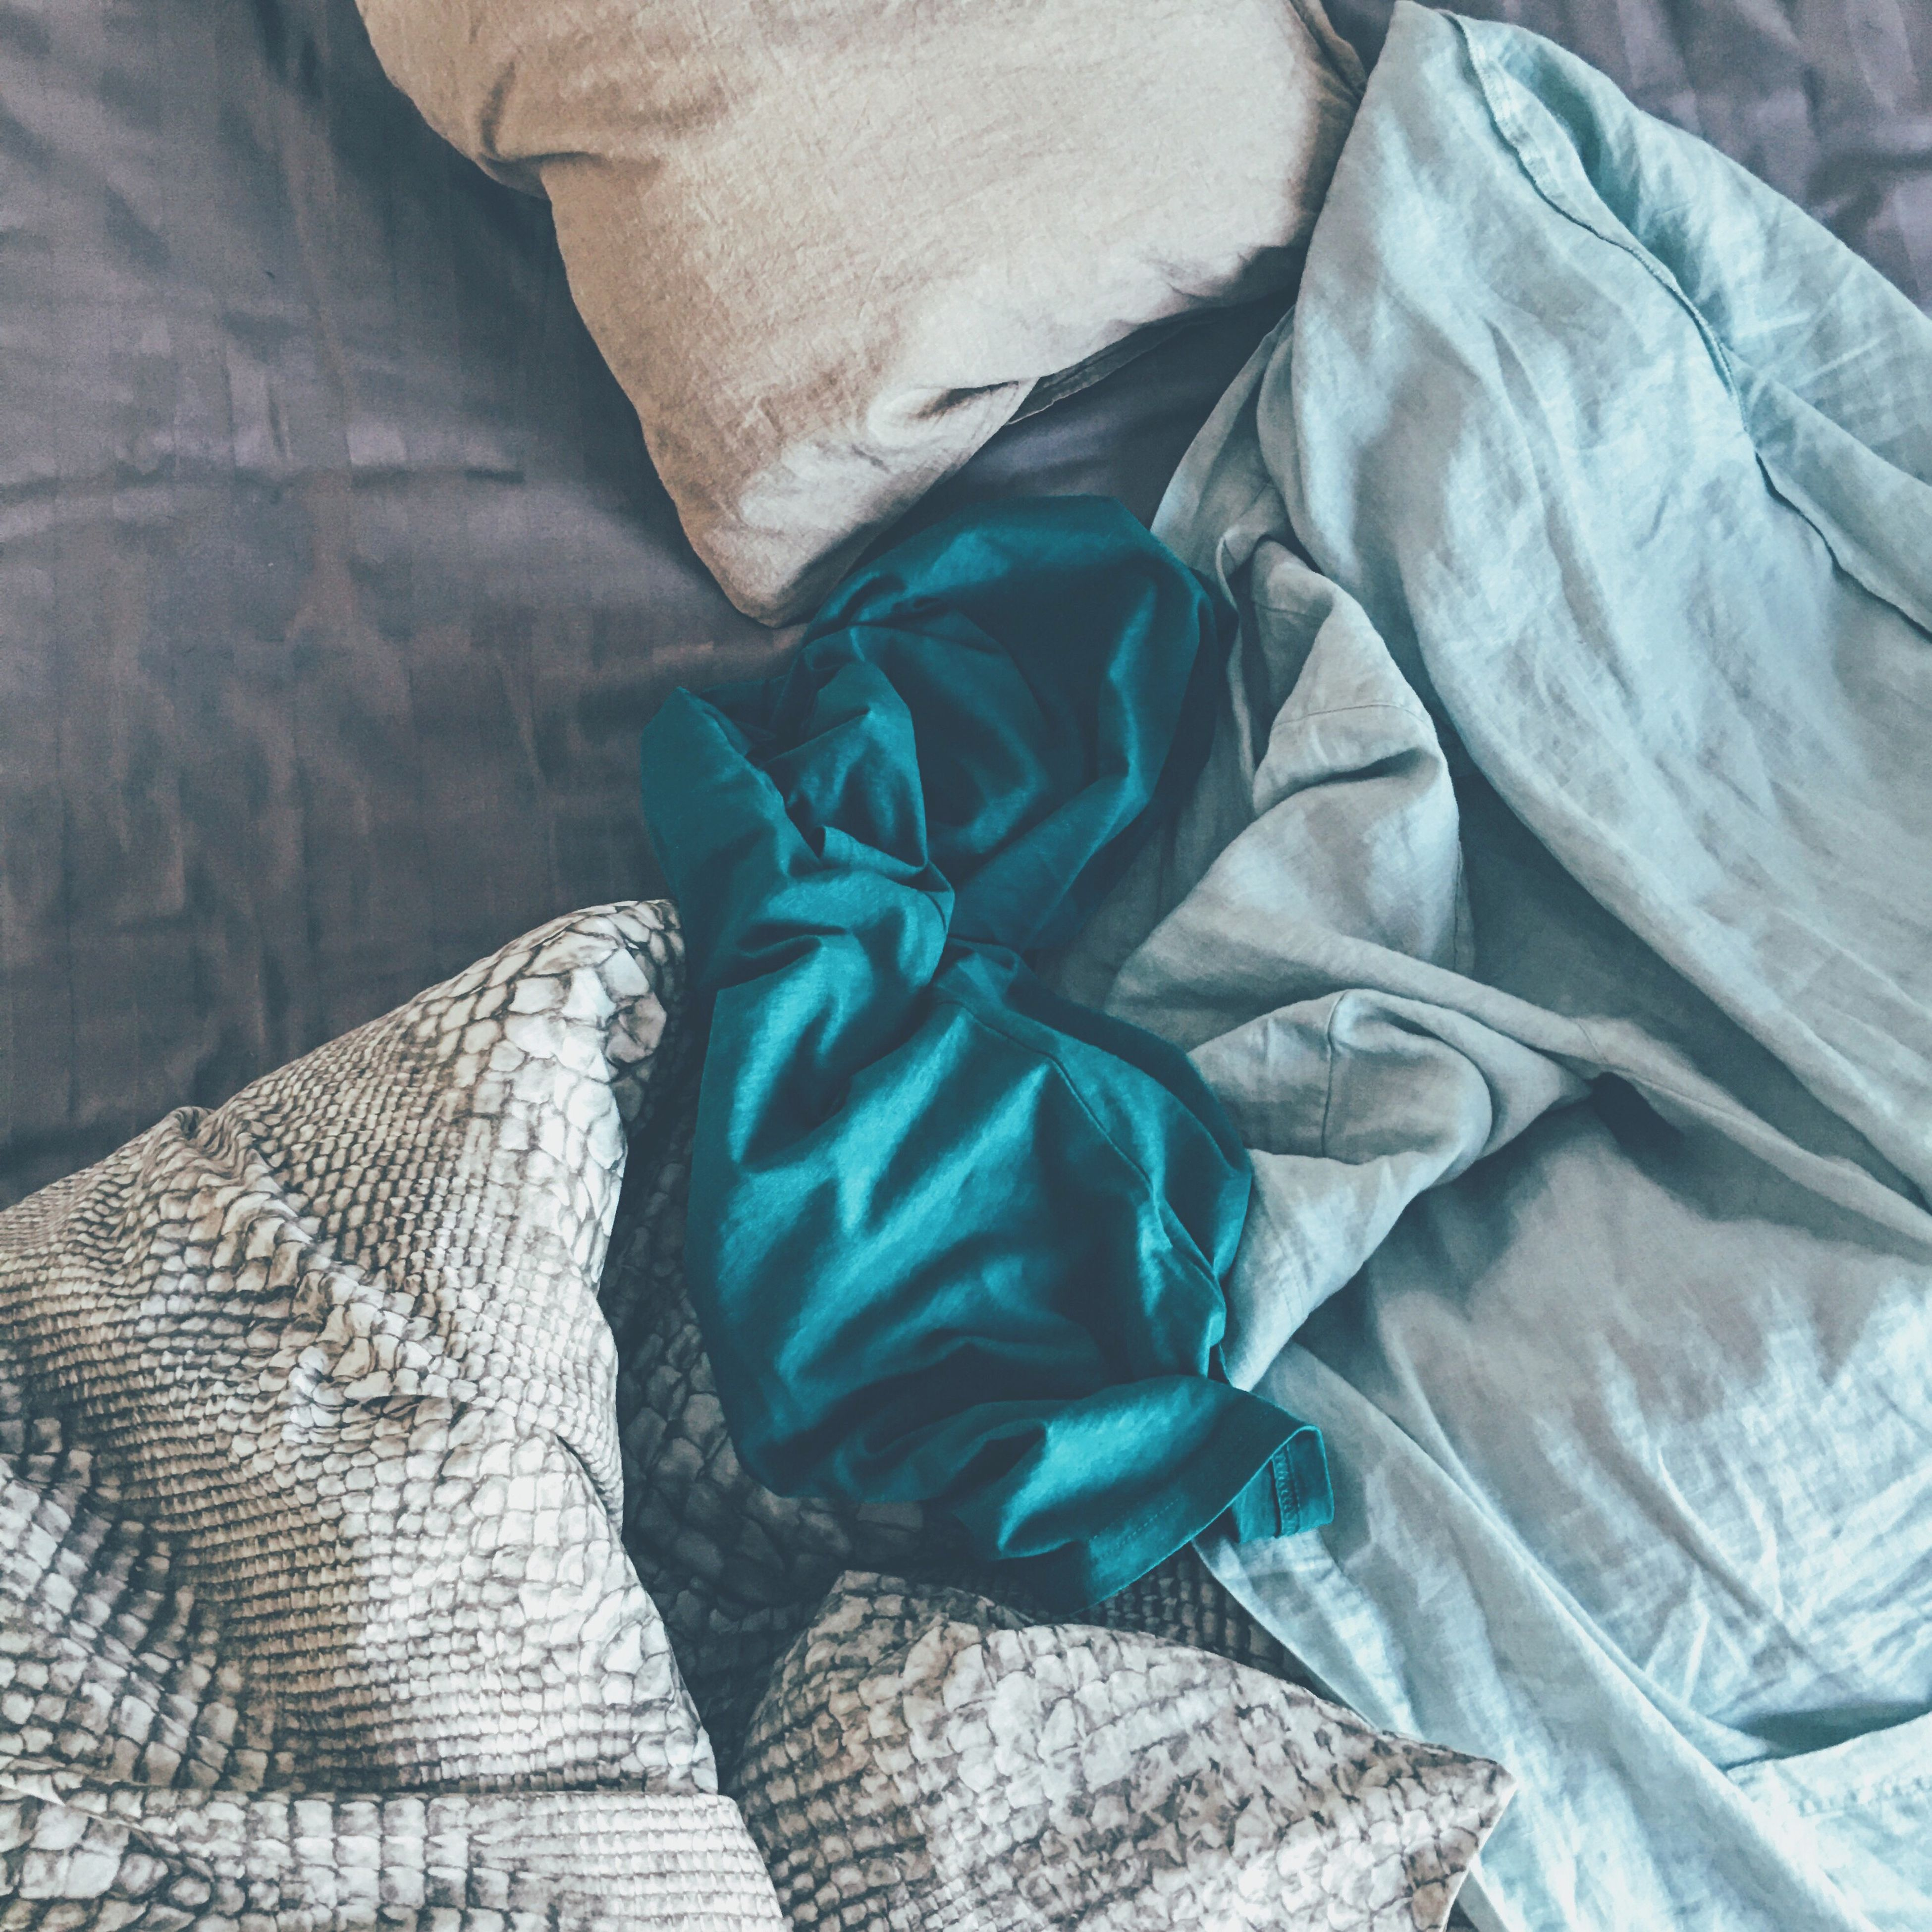 indoors, fabric, textile, blue, high angle view, bed, pattern, jeans, relaxation, close-up, sheet, day, one person, low section, blanket, clothing, comfortable, pillow, sunlight